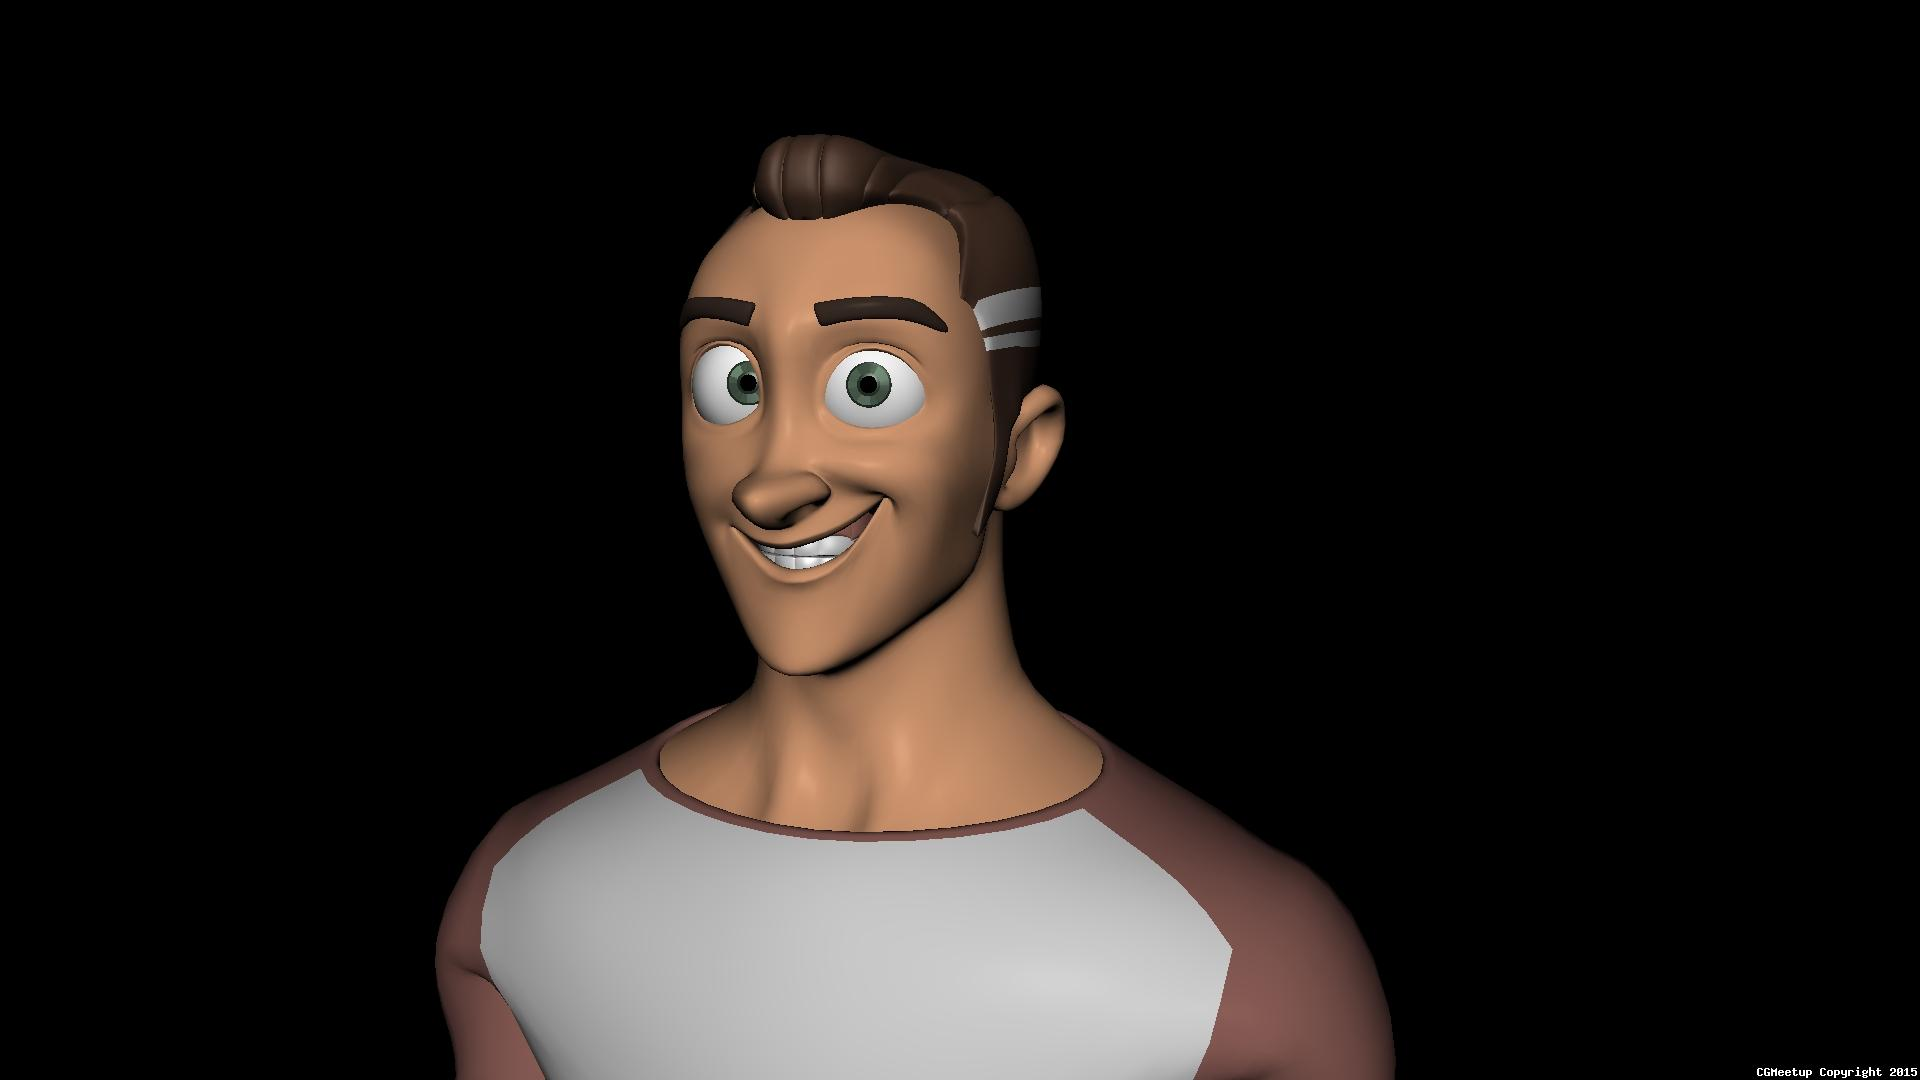 RIG REVIEW: 3 Stars – Johnny Rig – FREE – Thinking Animation